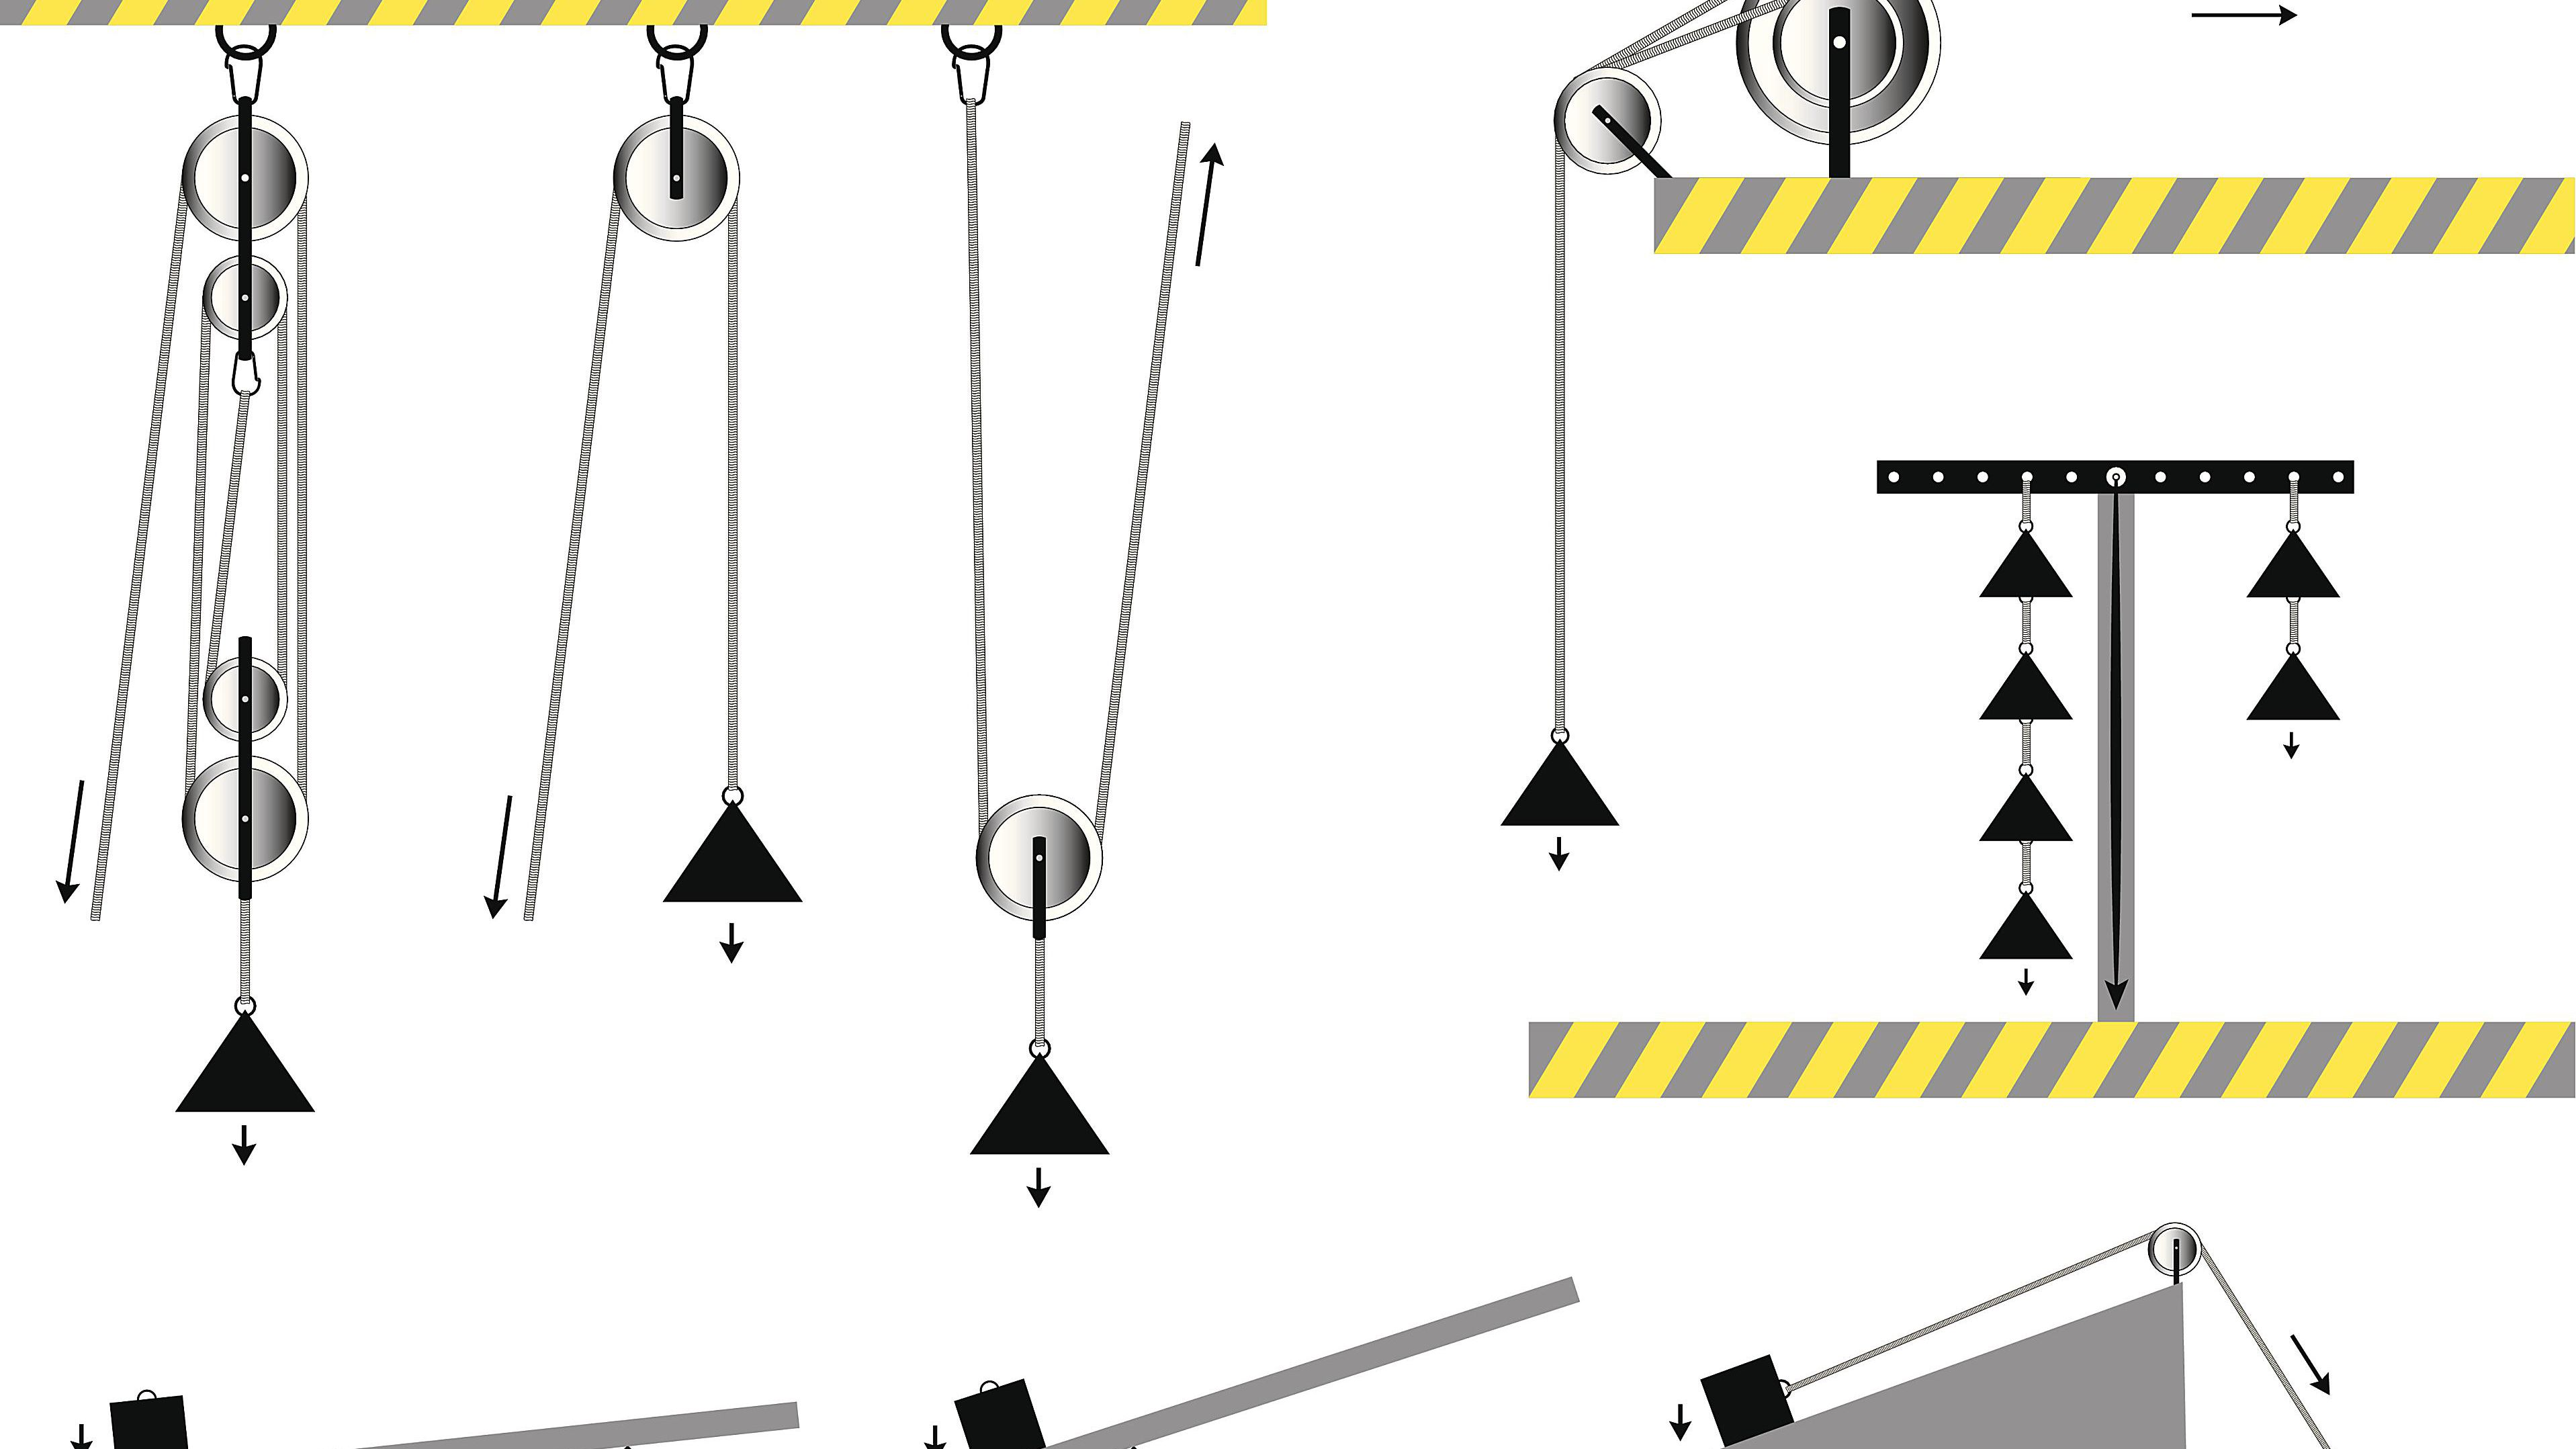 6 Kinds of Simple Machines